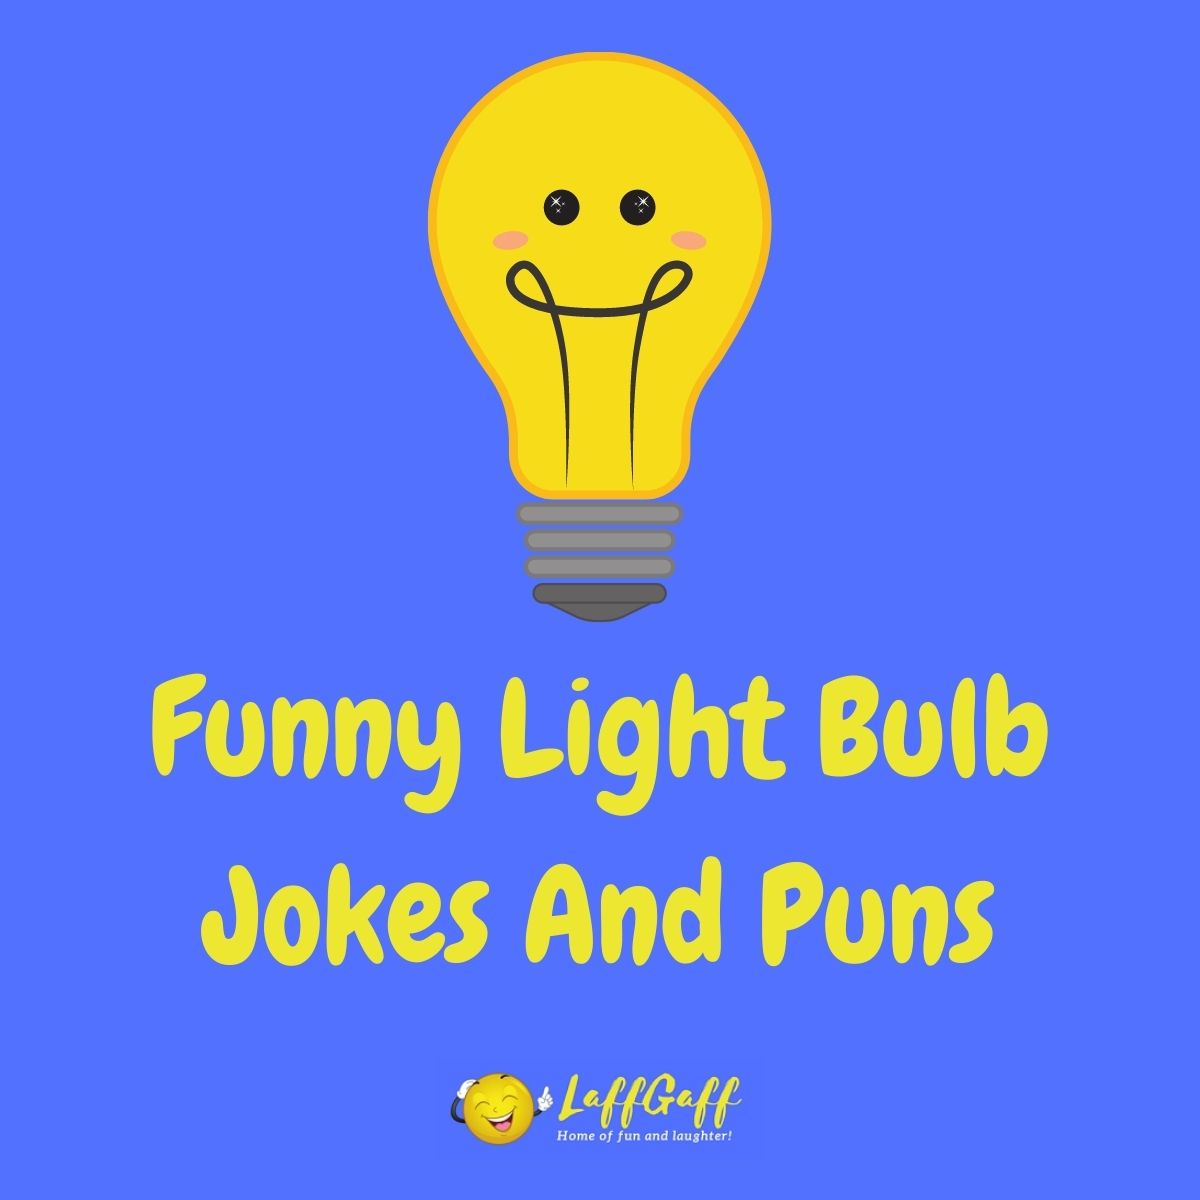 Featured image for a page of funny light bulb jokes and puns.